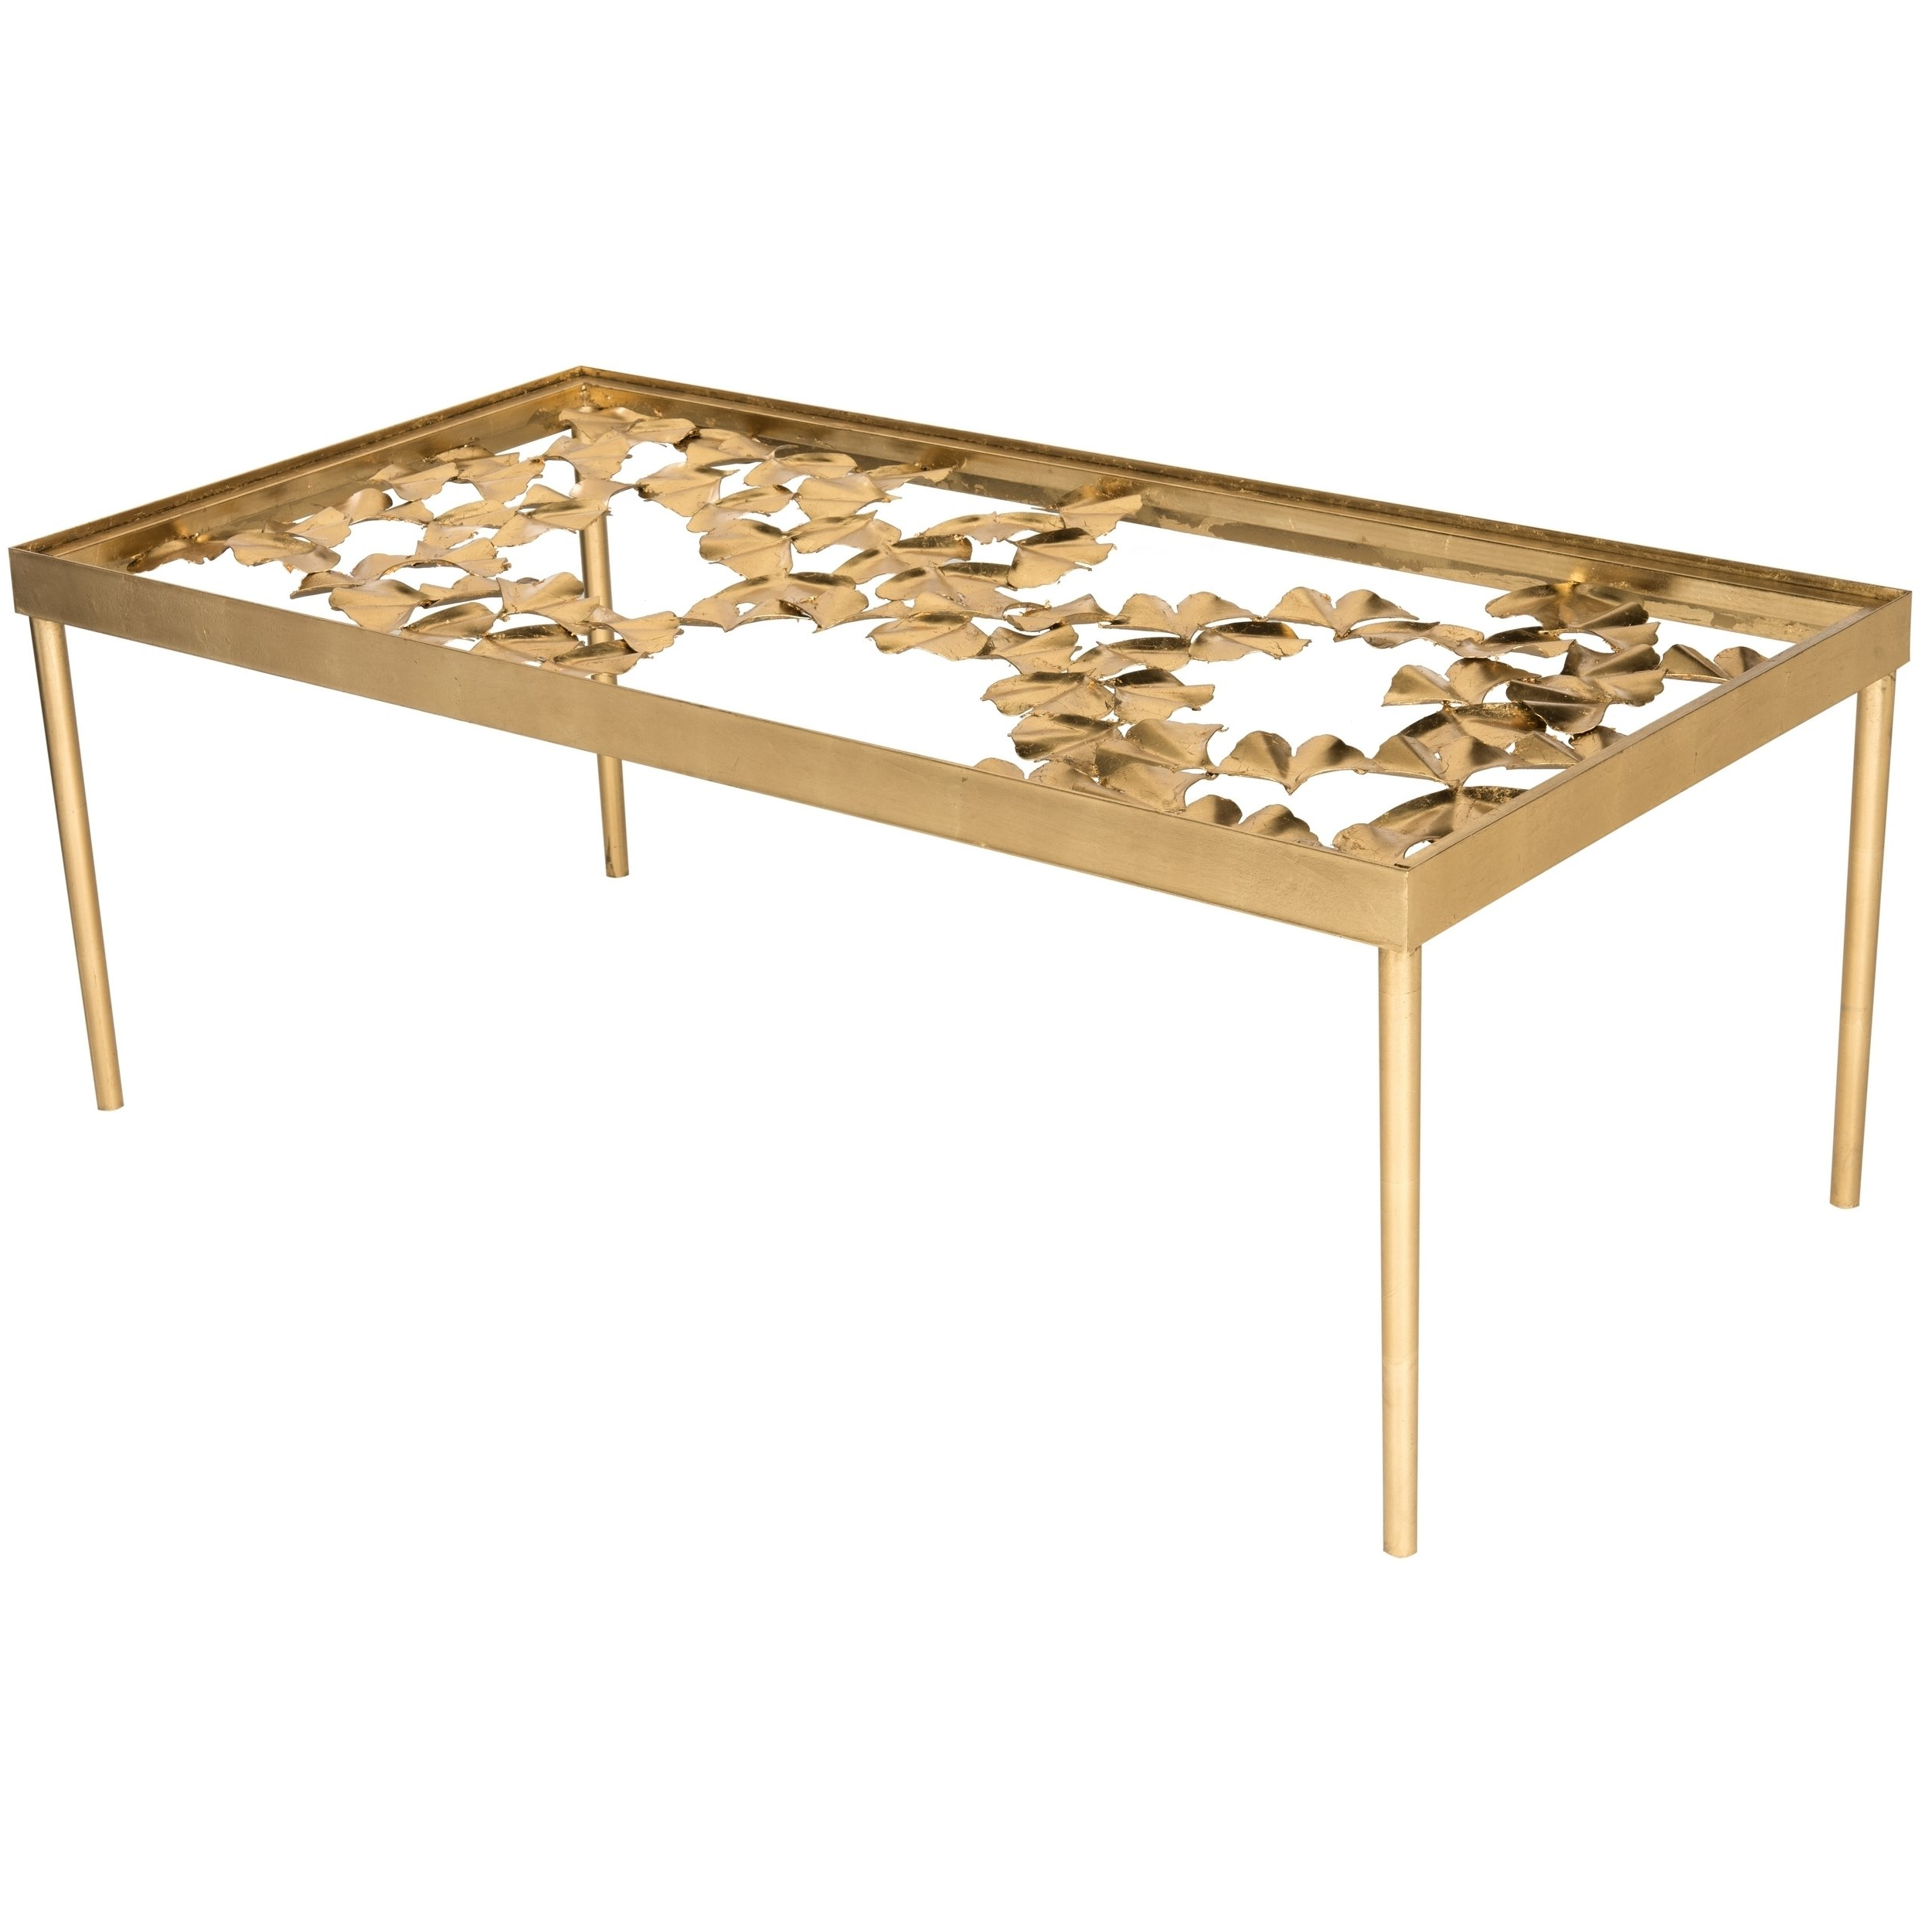 Popular Gold Leaf Collection Coffee Tables Inside Shop Safavieh Otto Antique Gold Leaf Coffee Table – Free Shipping (View 14 of 20)